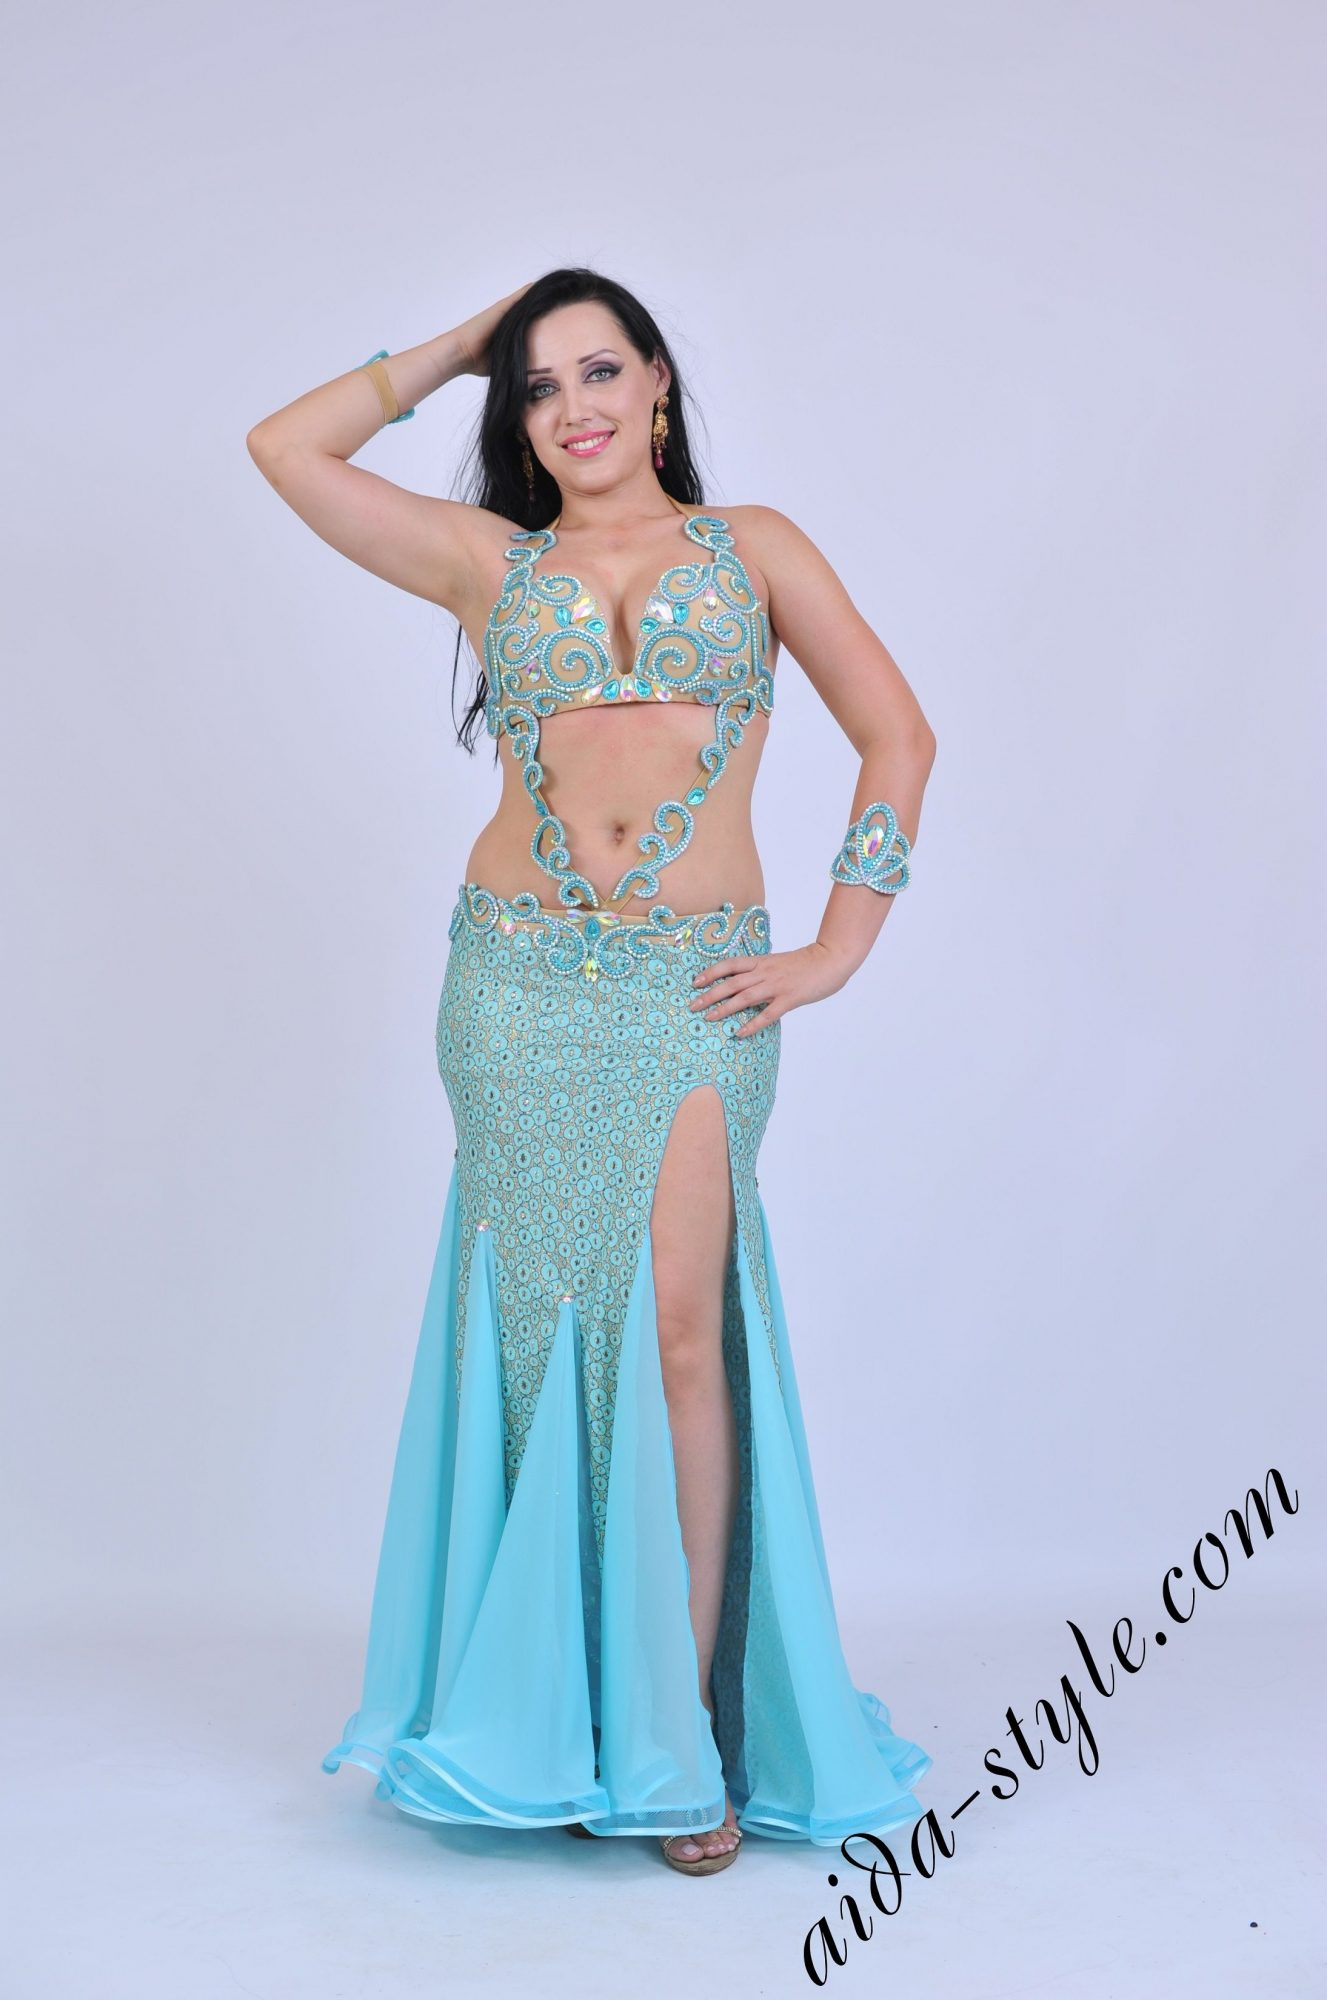 Light blue belly dancer costume with belly decoration